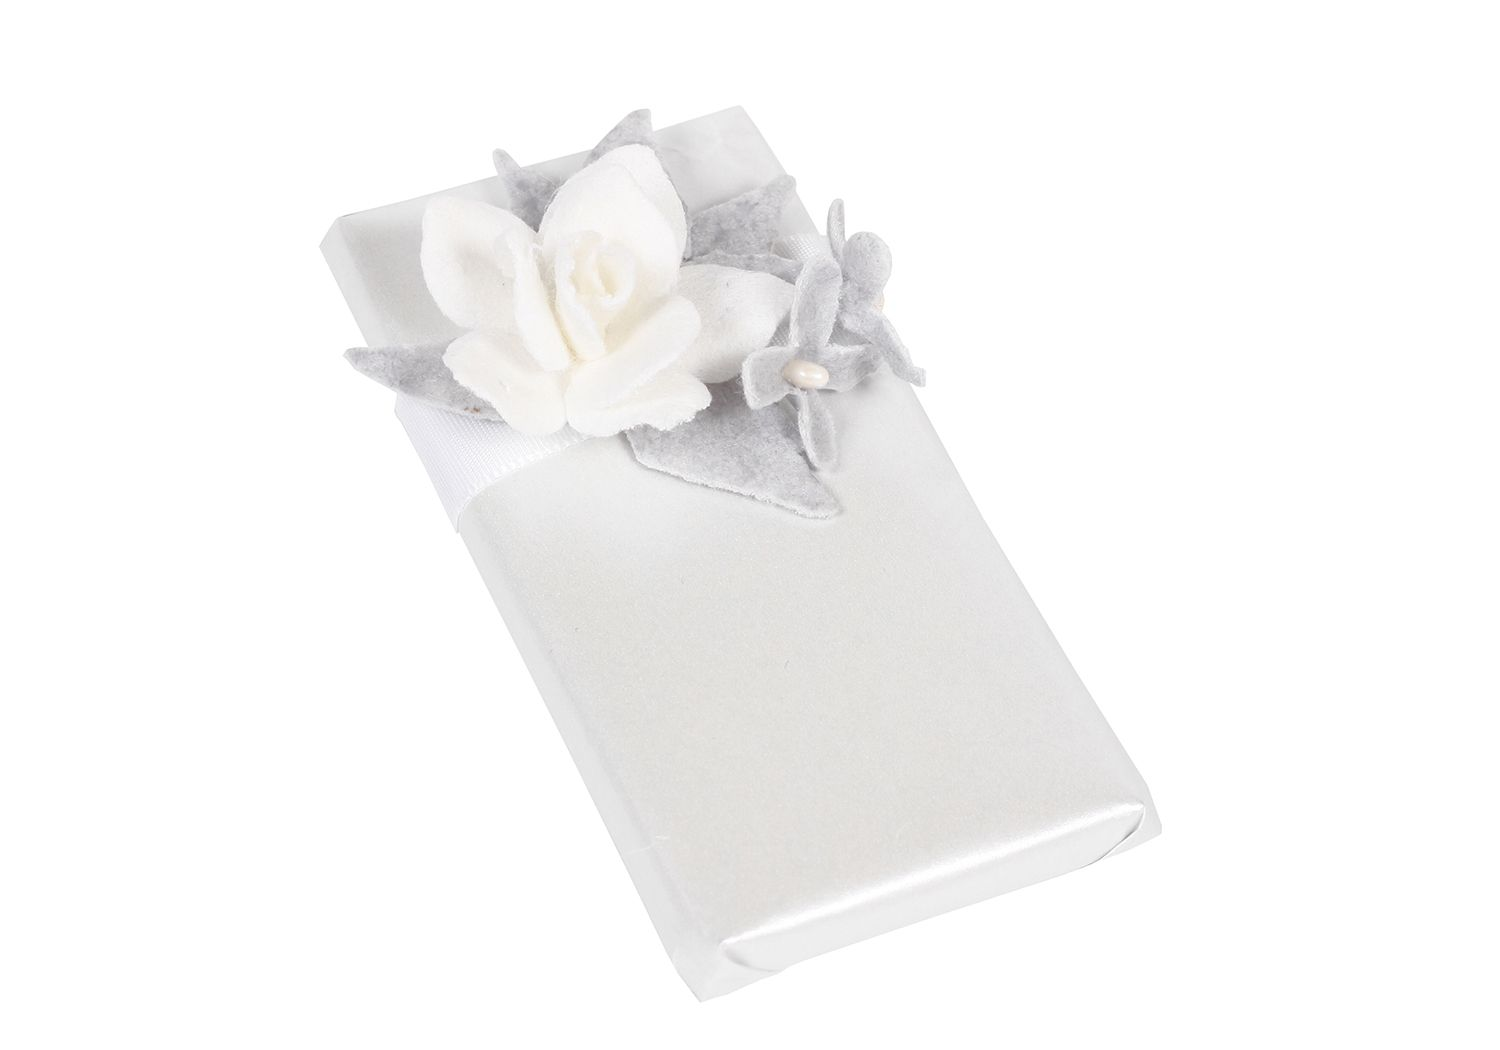 Patchi Serendipity Chocolate favor (Large) http://patchi.us/wedding ...